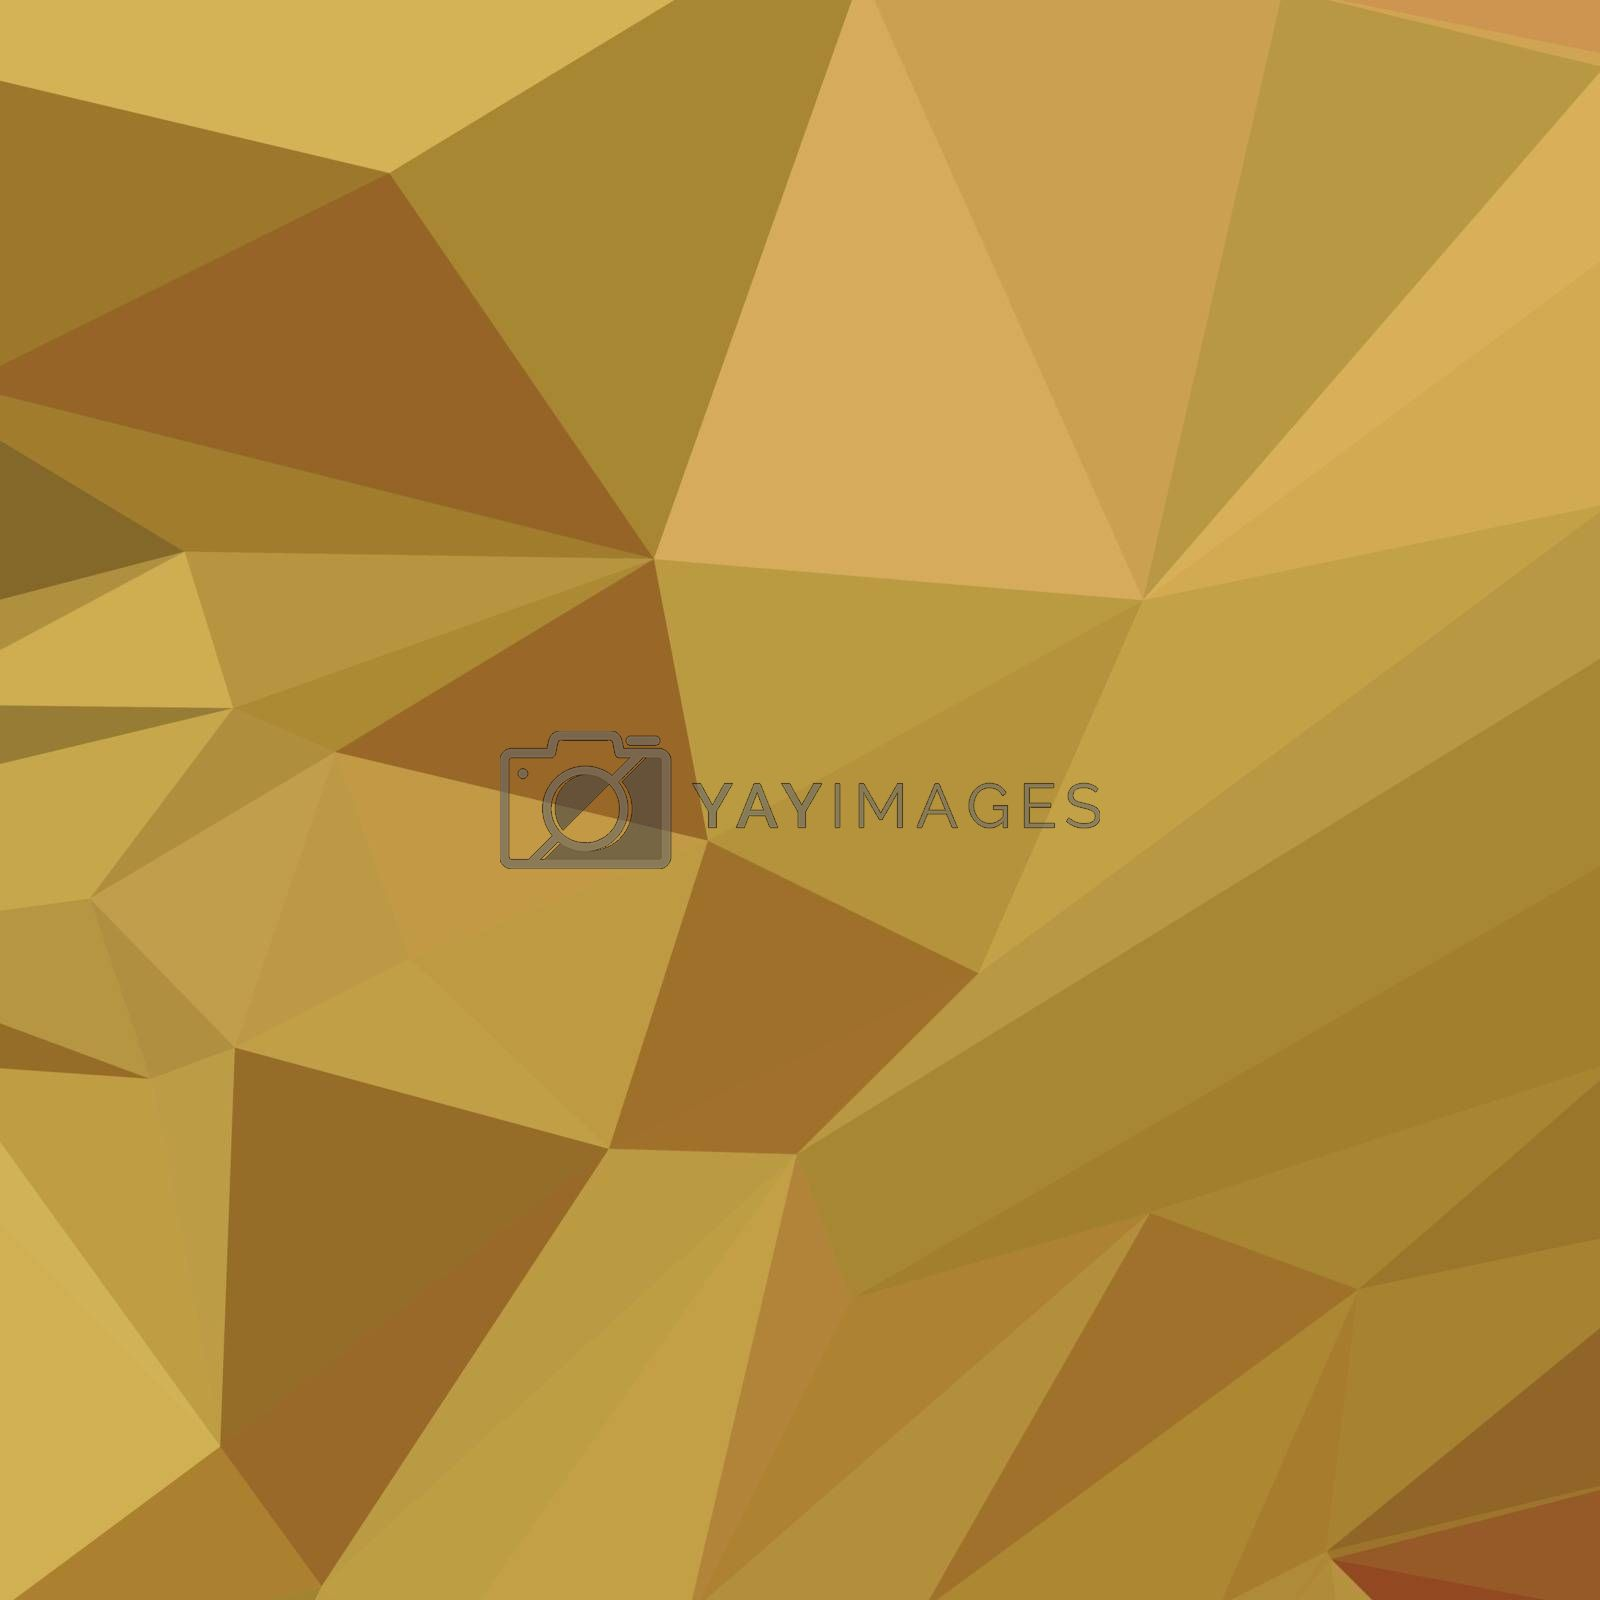 Low polygon style illustration of goldenrod yellow abstract geometric background.